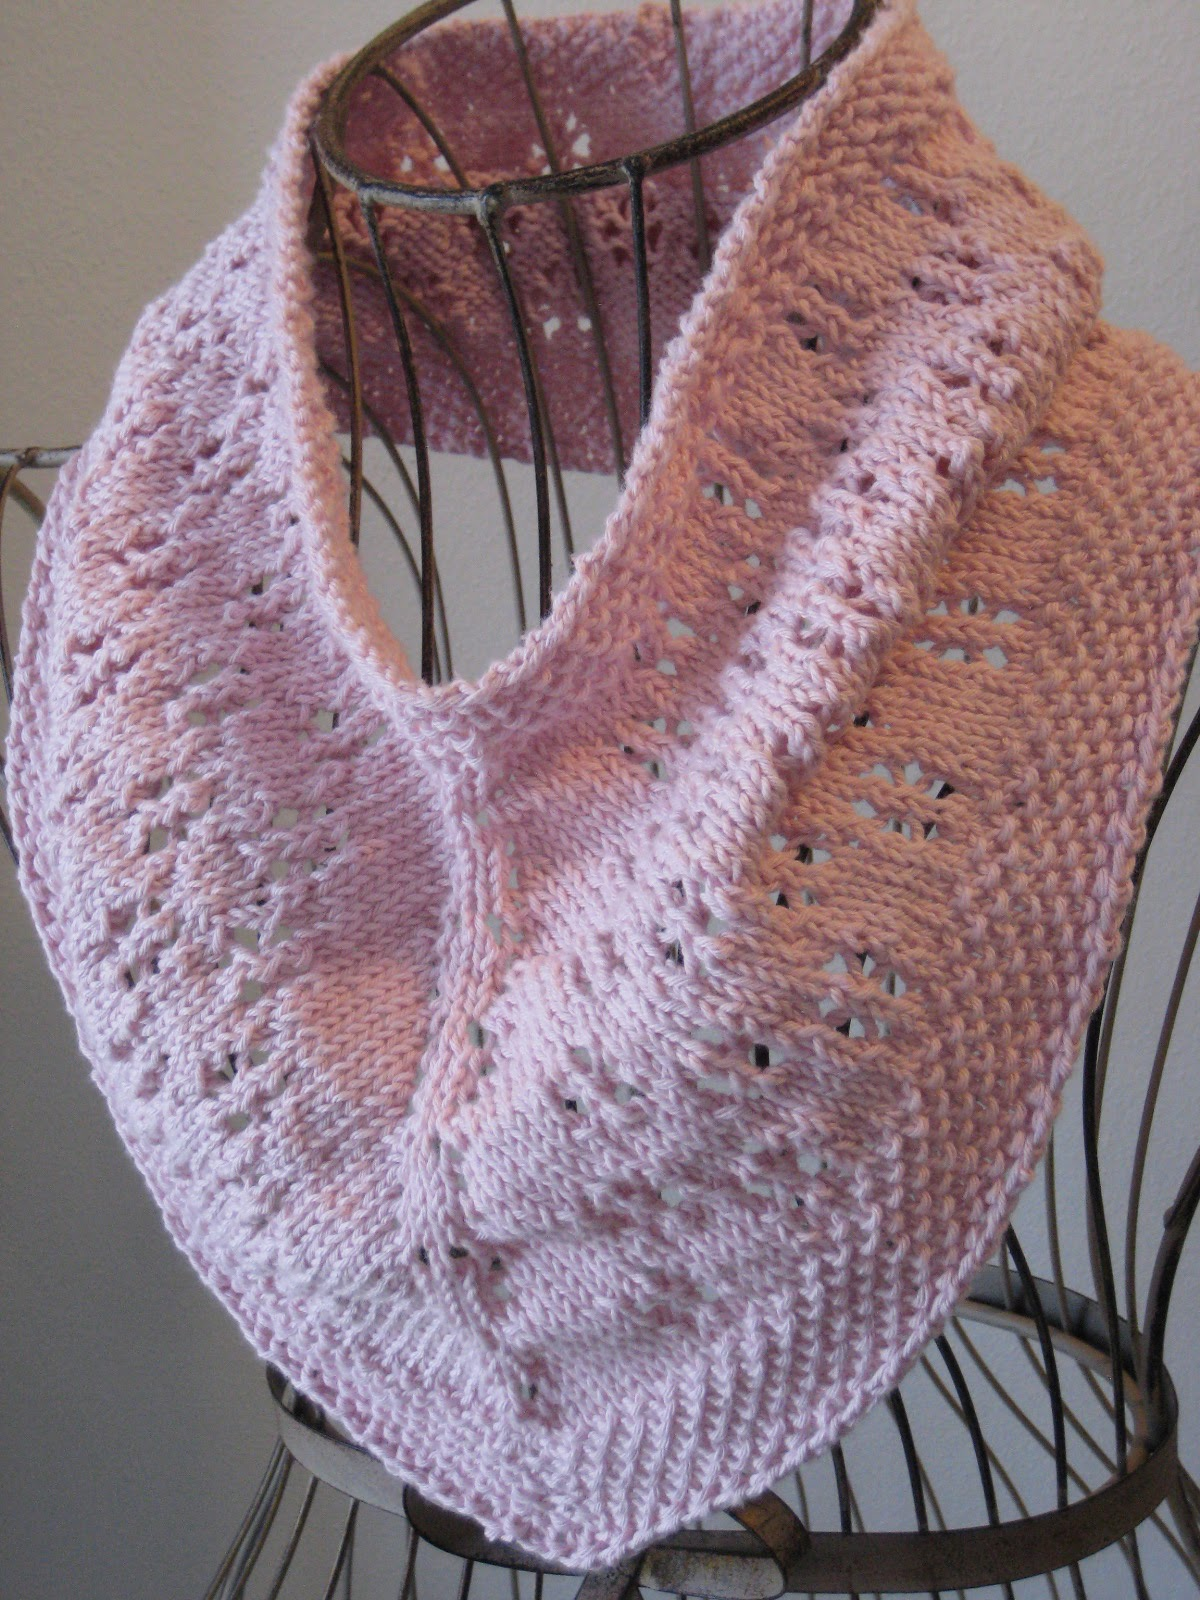 Balls to the Walls Knits: Daisy Chain Cowl